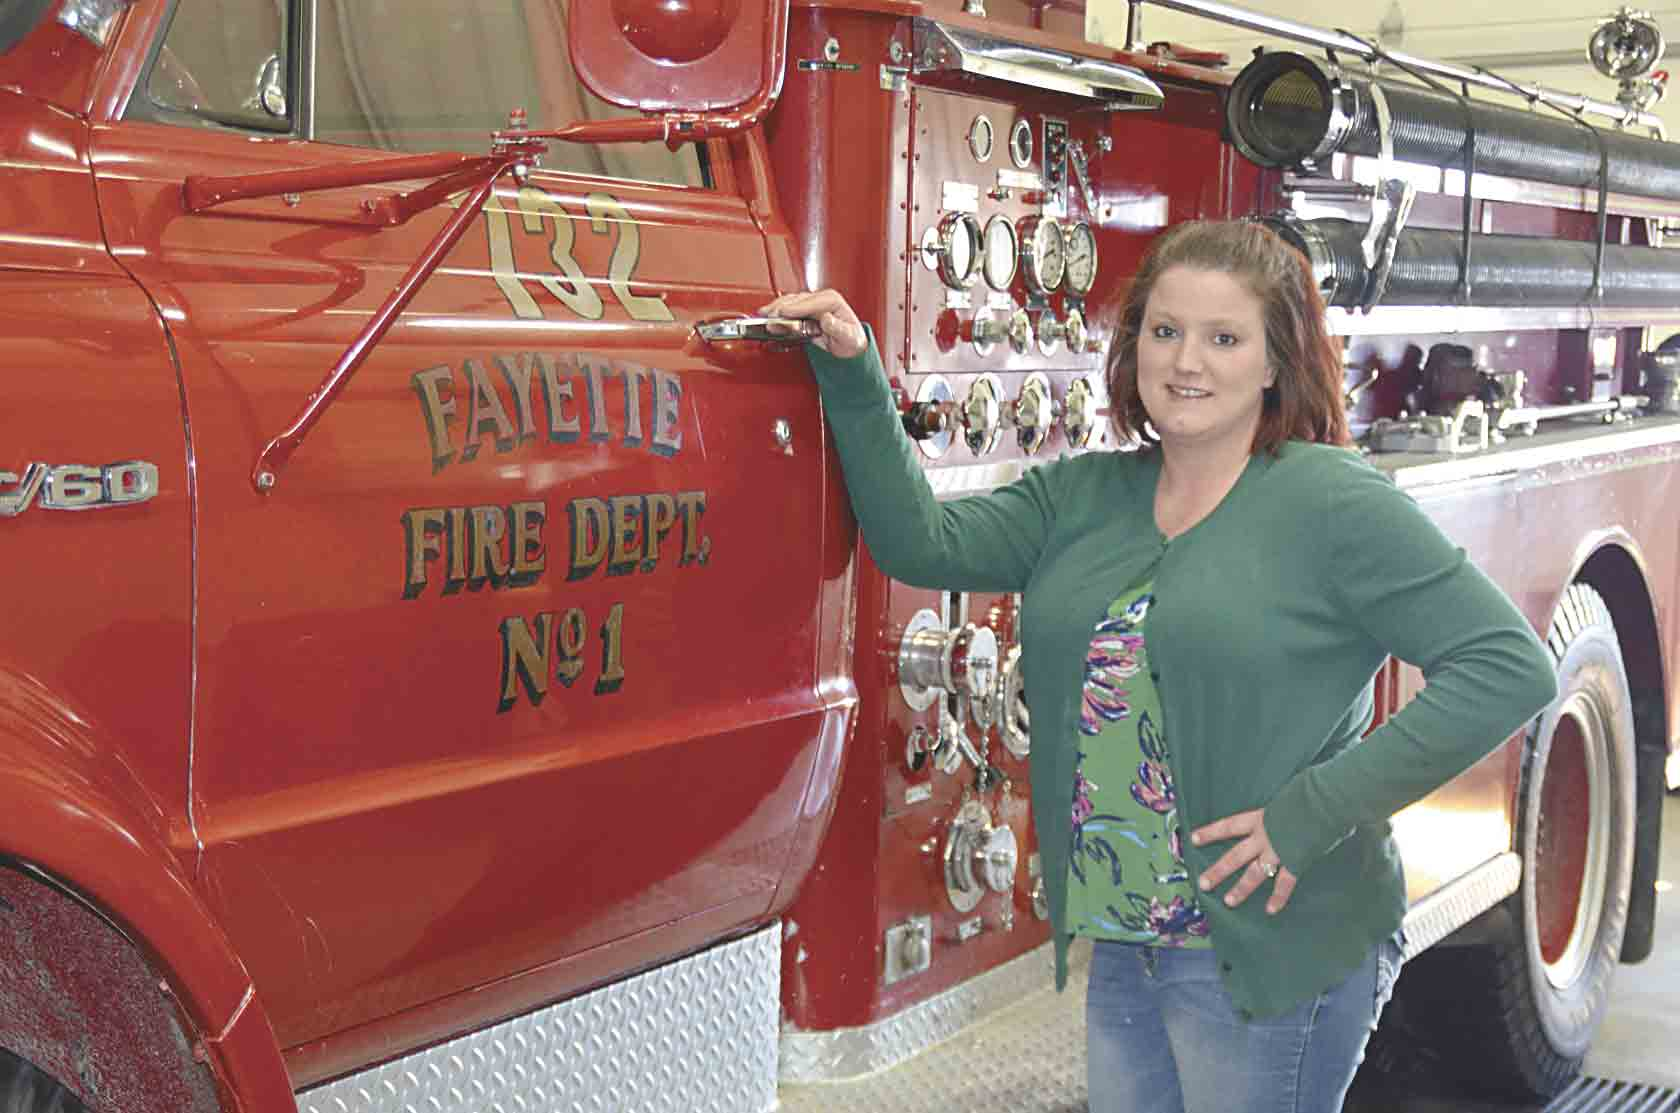 Linnie Magnuson is the newest member of the Fayette Fire Department. She was approved at the last Fayette City Council meeting on Monday, March 4.  (Chris DeBack photo) 	Magnuson joins exclusive club as a female firefighter in Fayette  By Chris Deback...